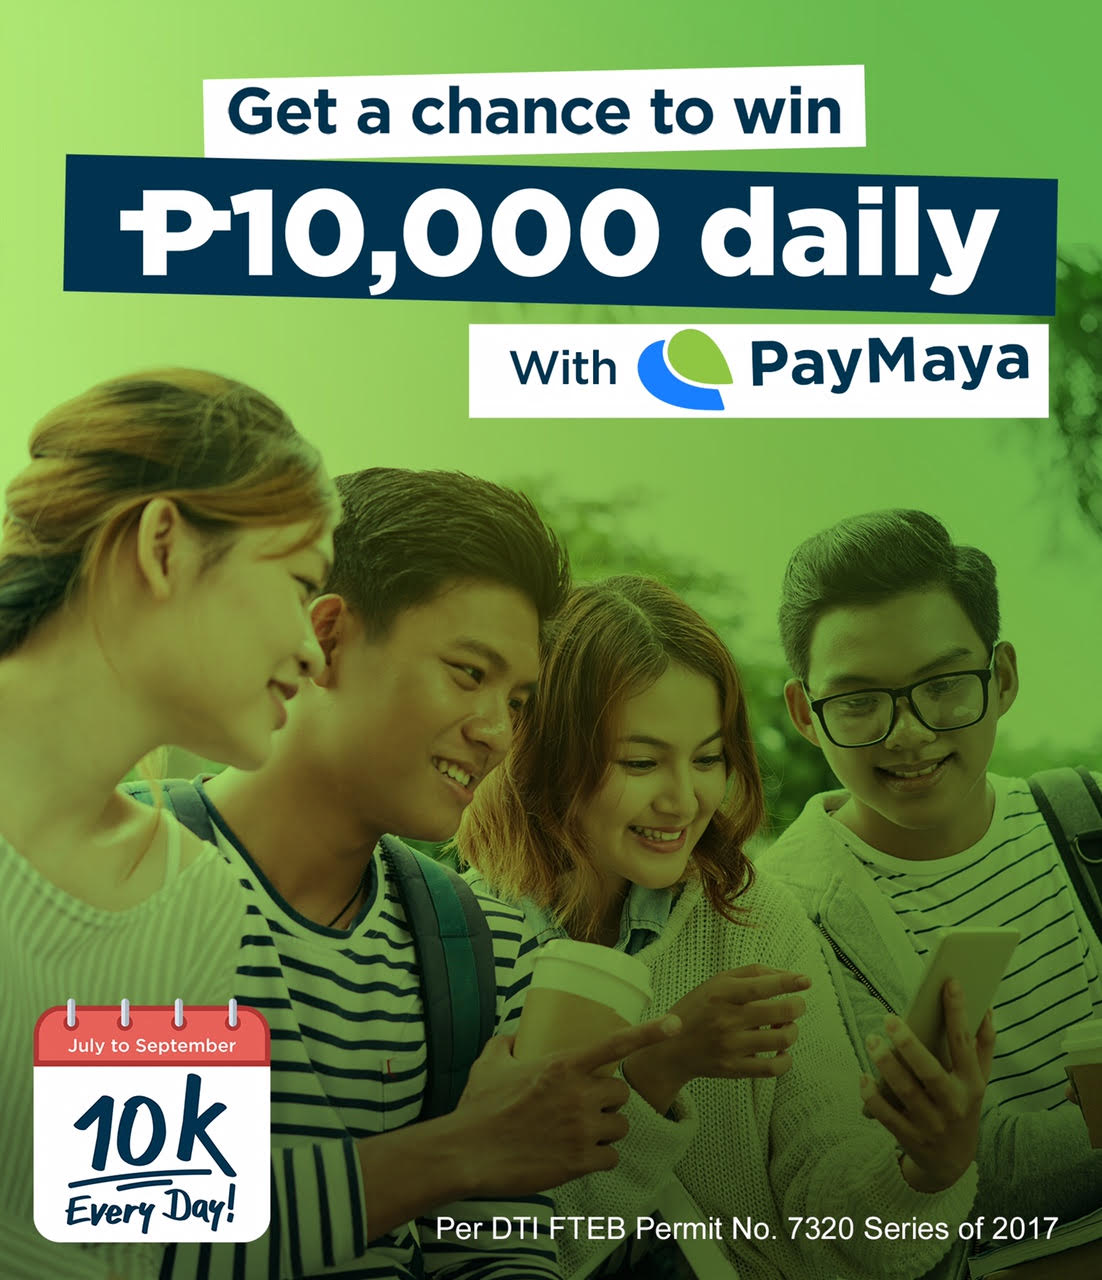 10k every day promo, e-shopping, online shopping, paymaya, paymaya philippines